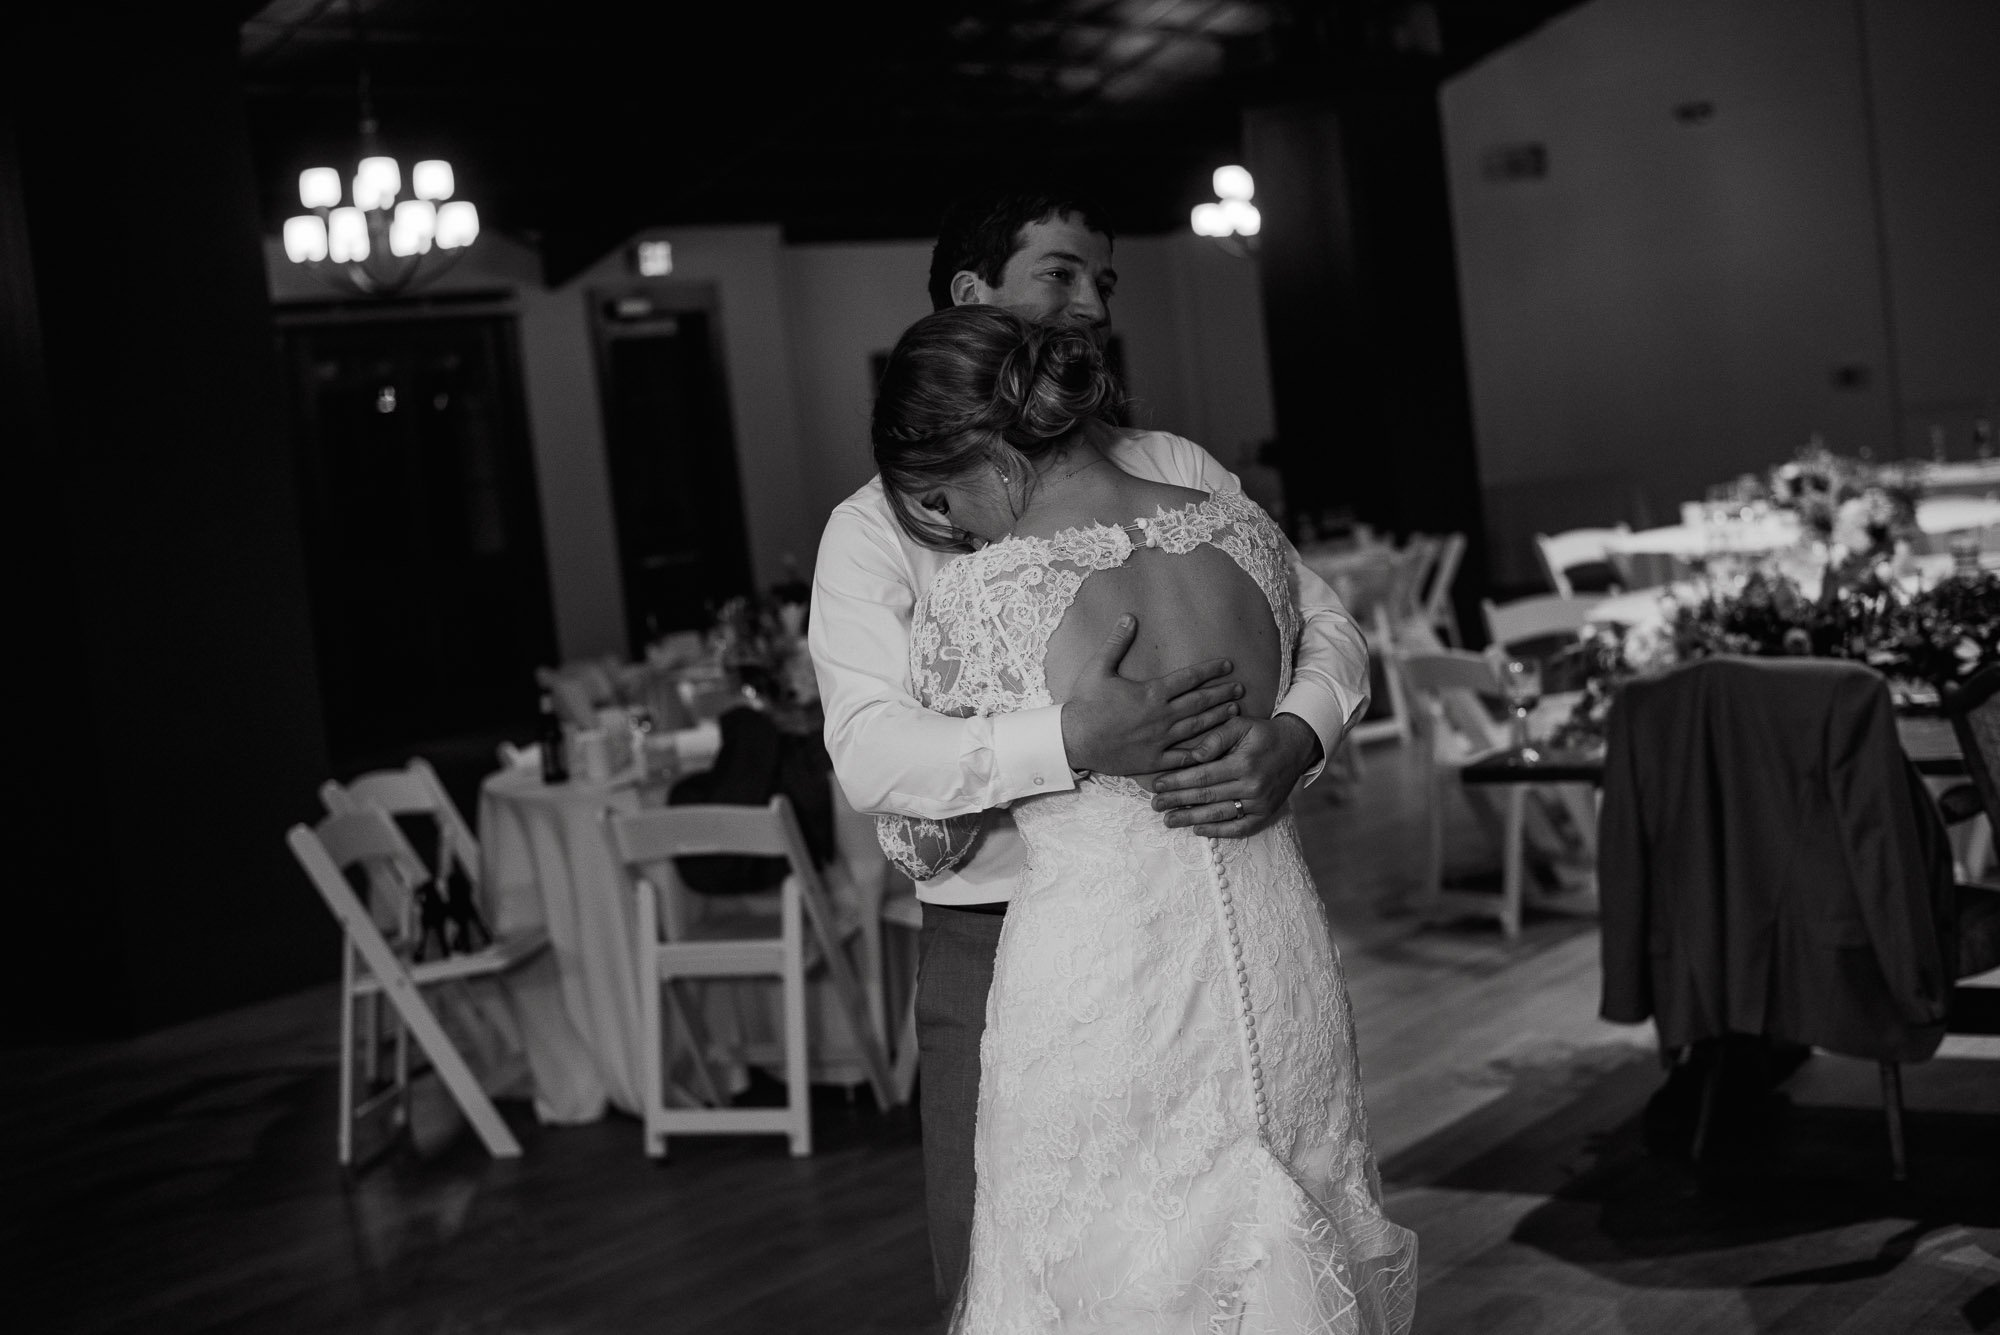 black and white photo of the bride & groom last dance, last dance photos, end of the night at a wedding